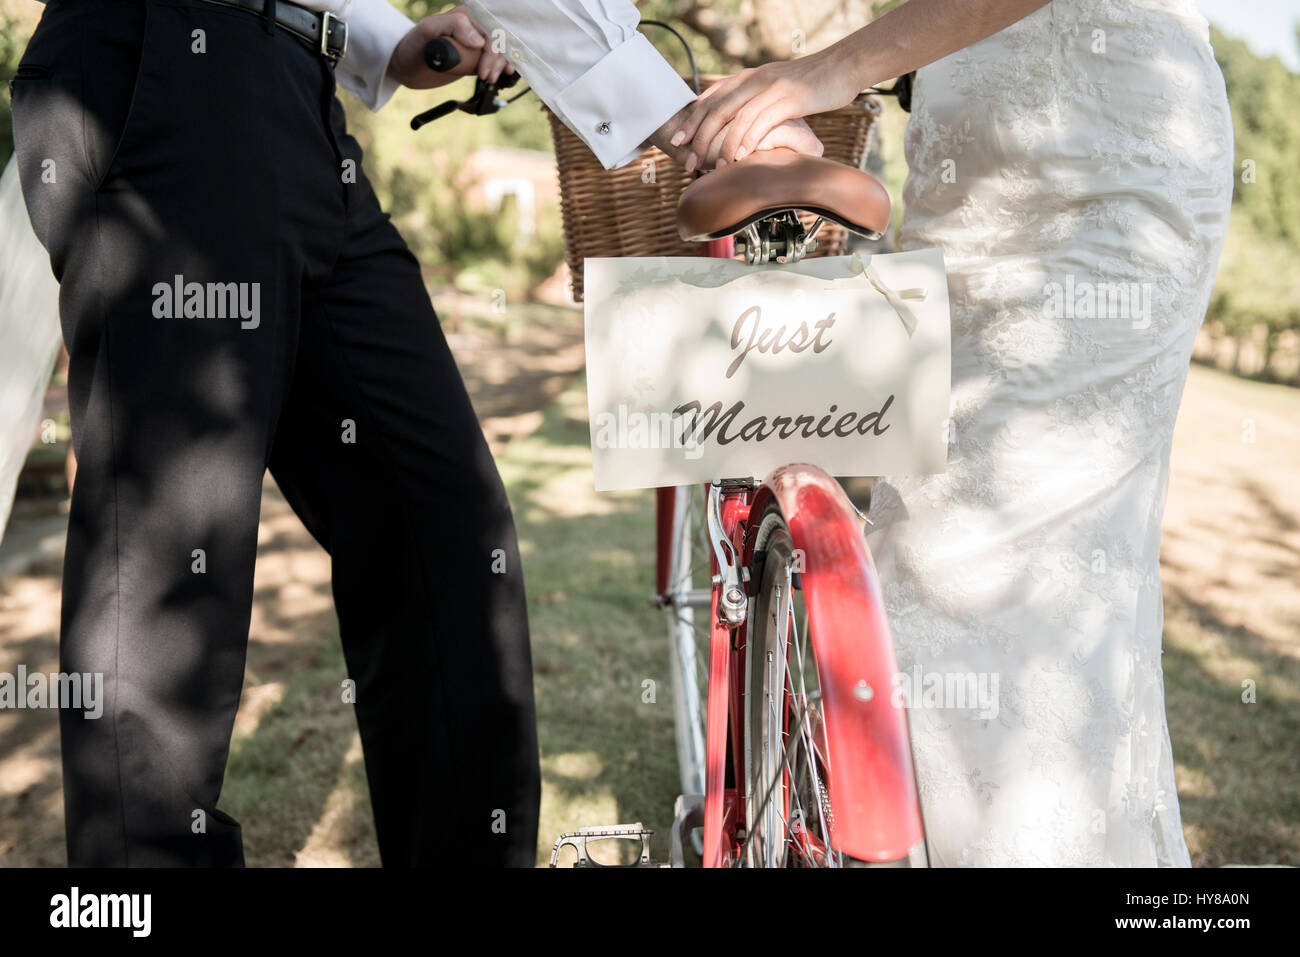 A bride and groom push a bicycle with a Just Married sign on the back - Stock Image